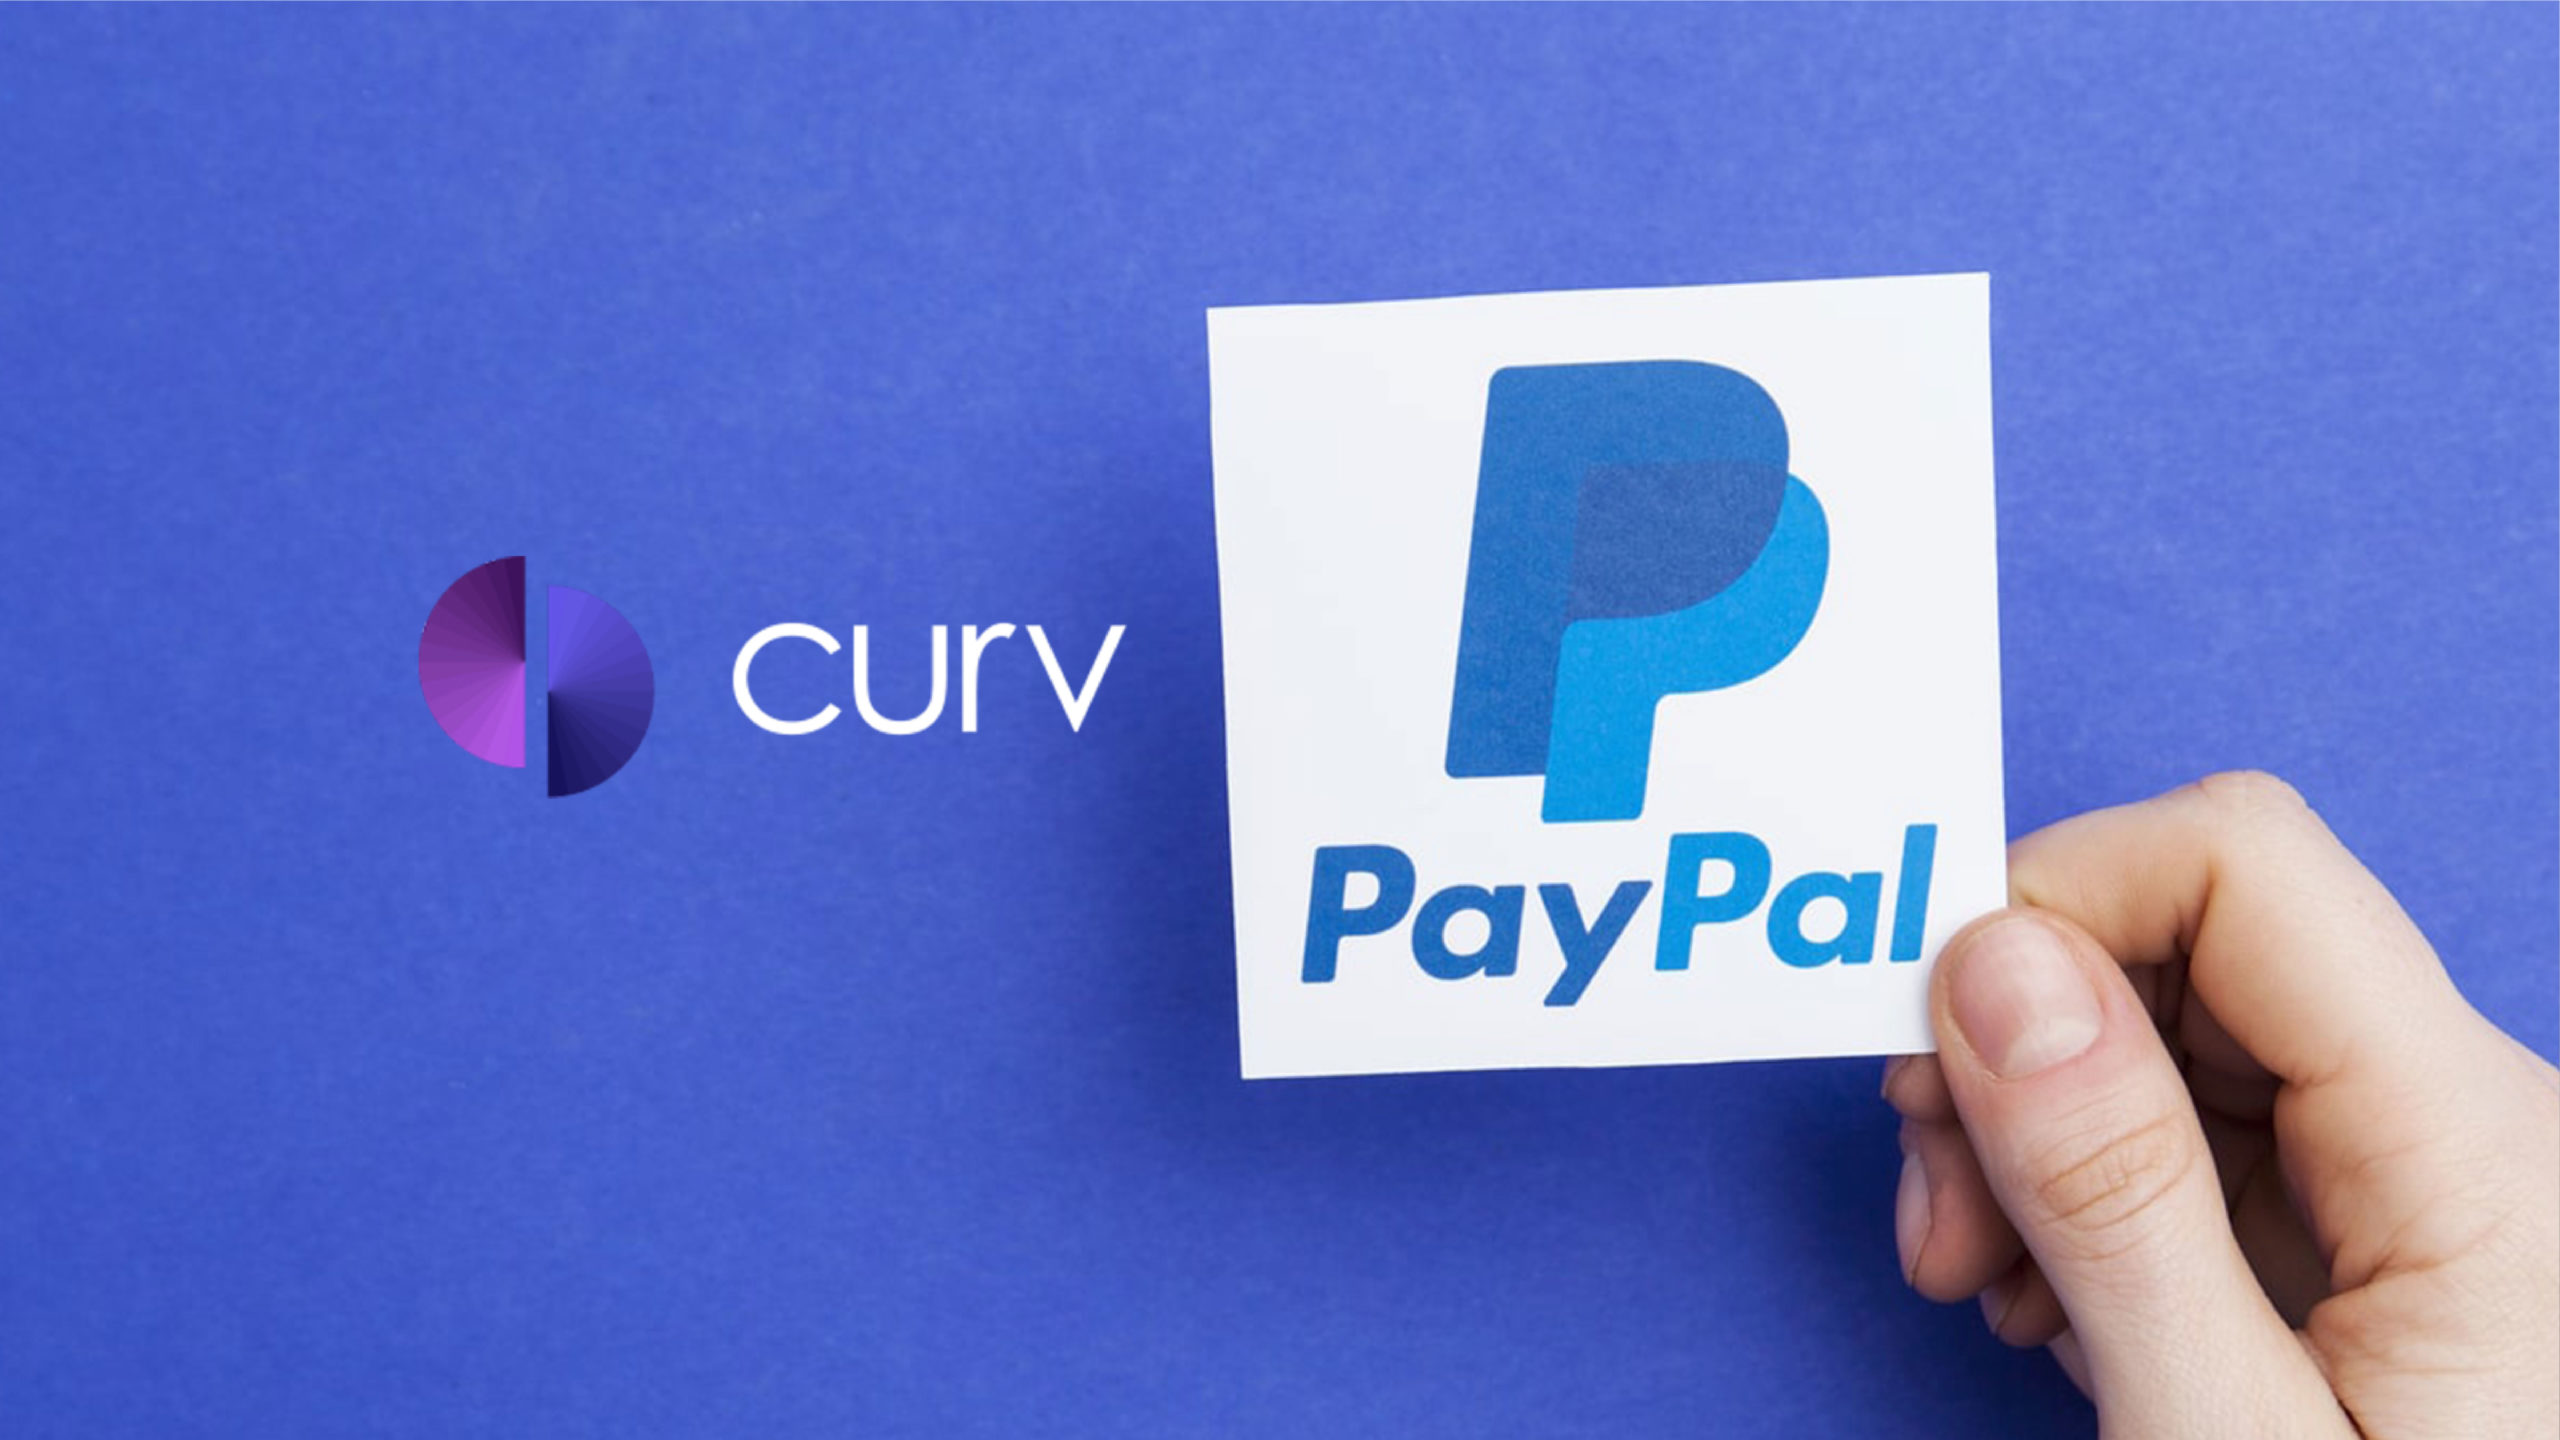 PayPal and curv